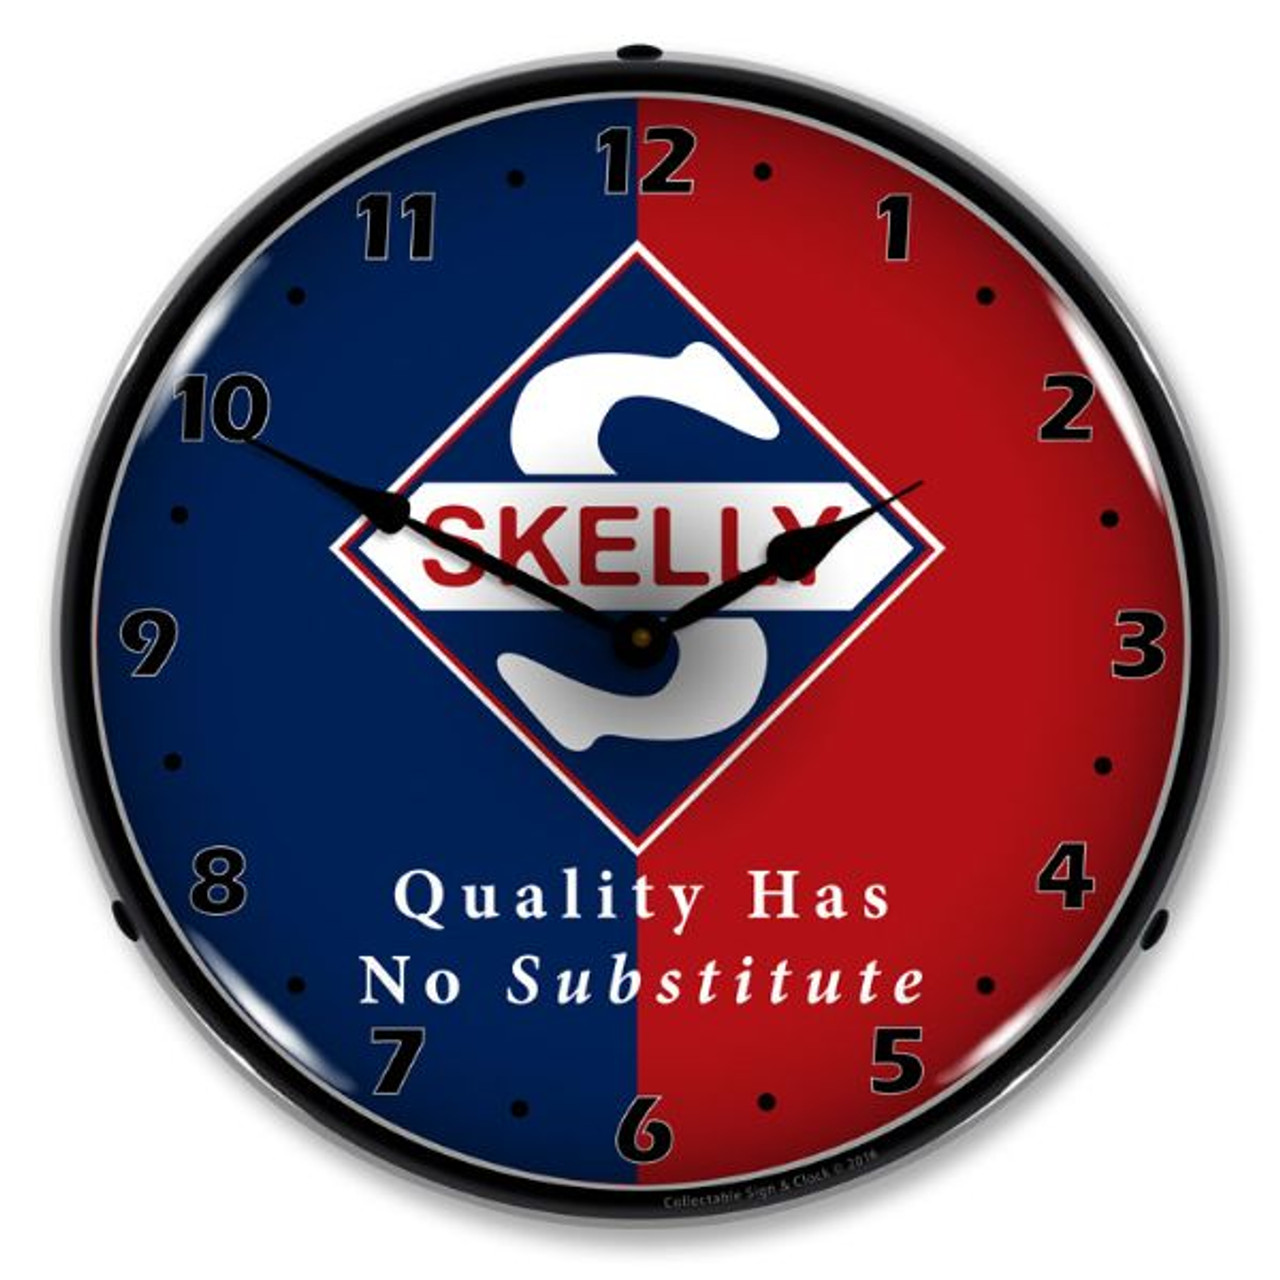 Skelly 2 Lighted Wall Clock 14 x 14 Inches